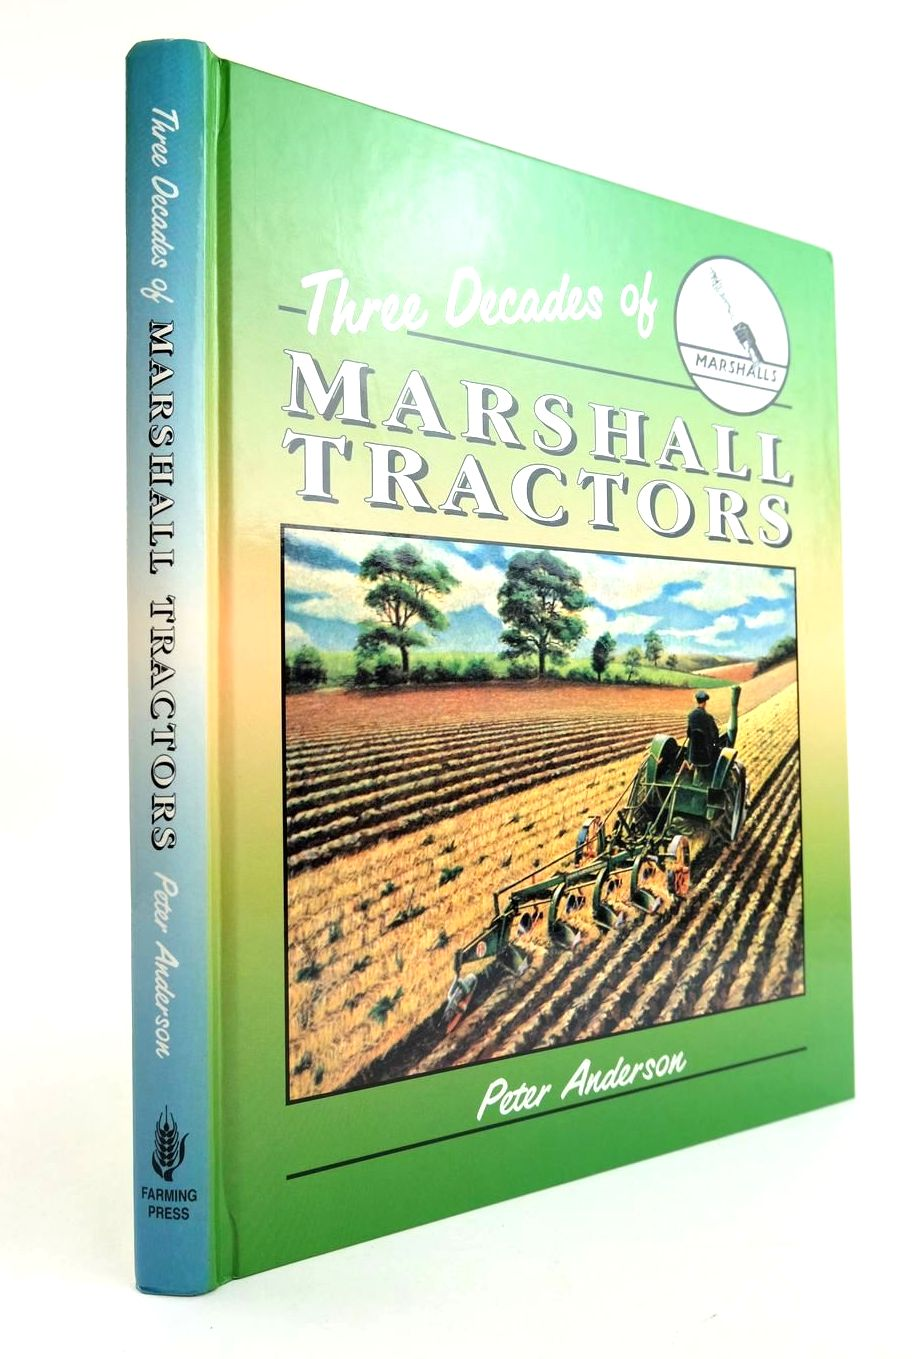 Photo of THREE DECADES MARSHALL TRACTORS written by Anderson, Peter published by Farming Press (STOCK CODE: 2132346)  for sale by Stella & Rose's Books